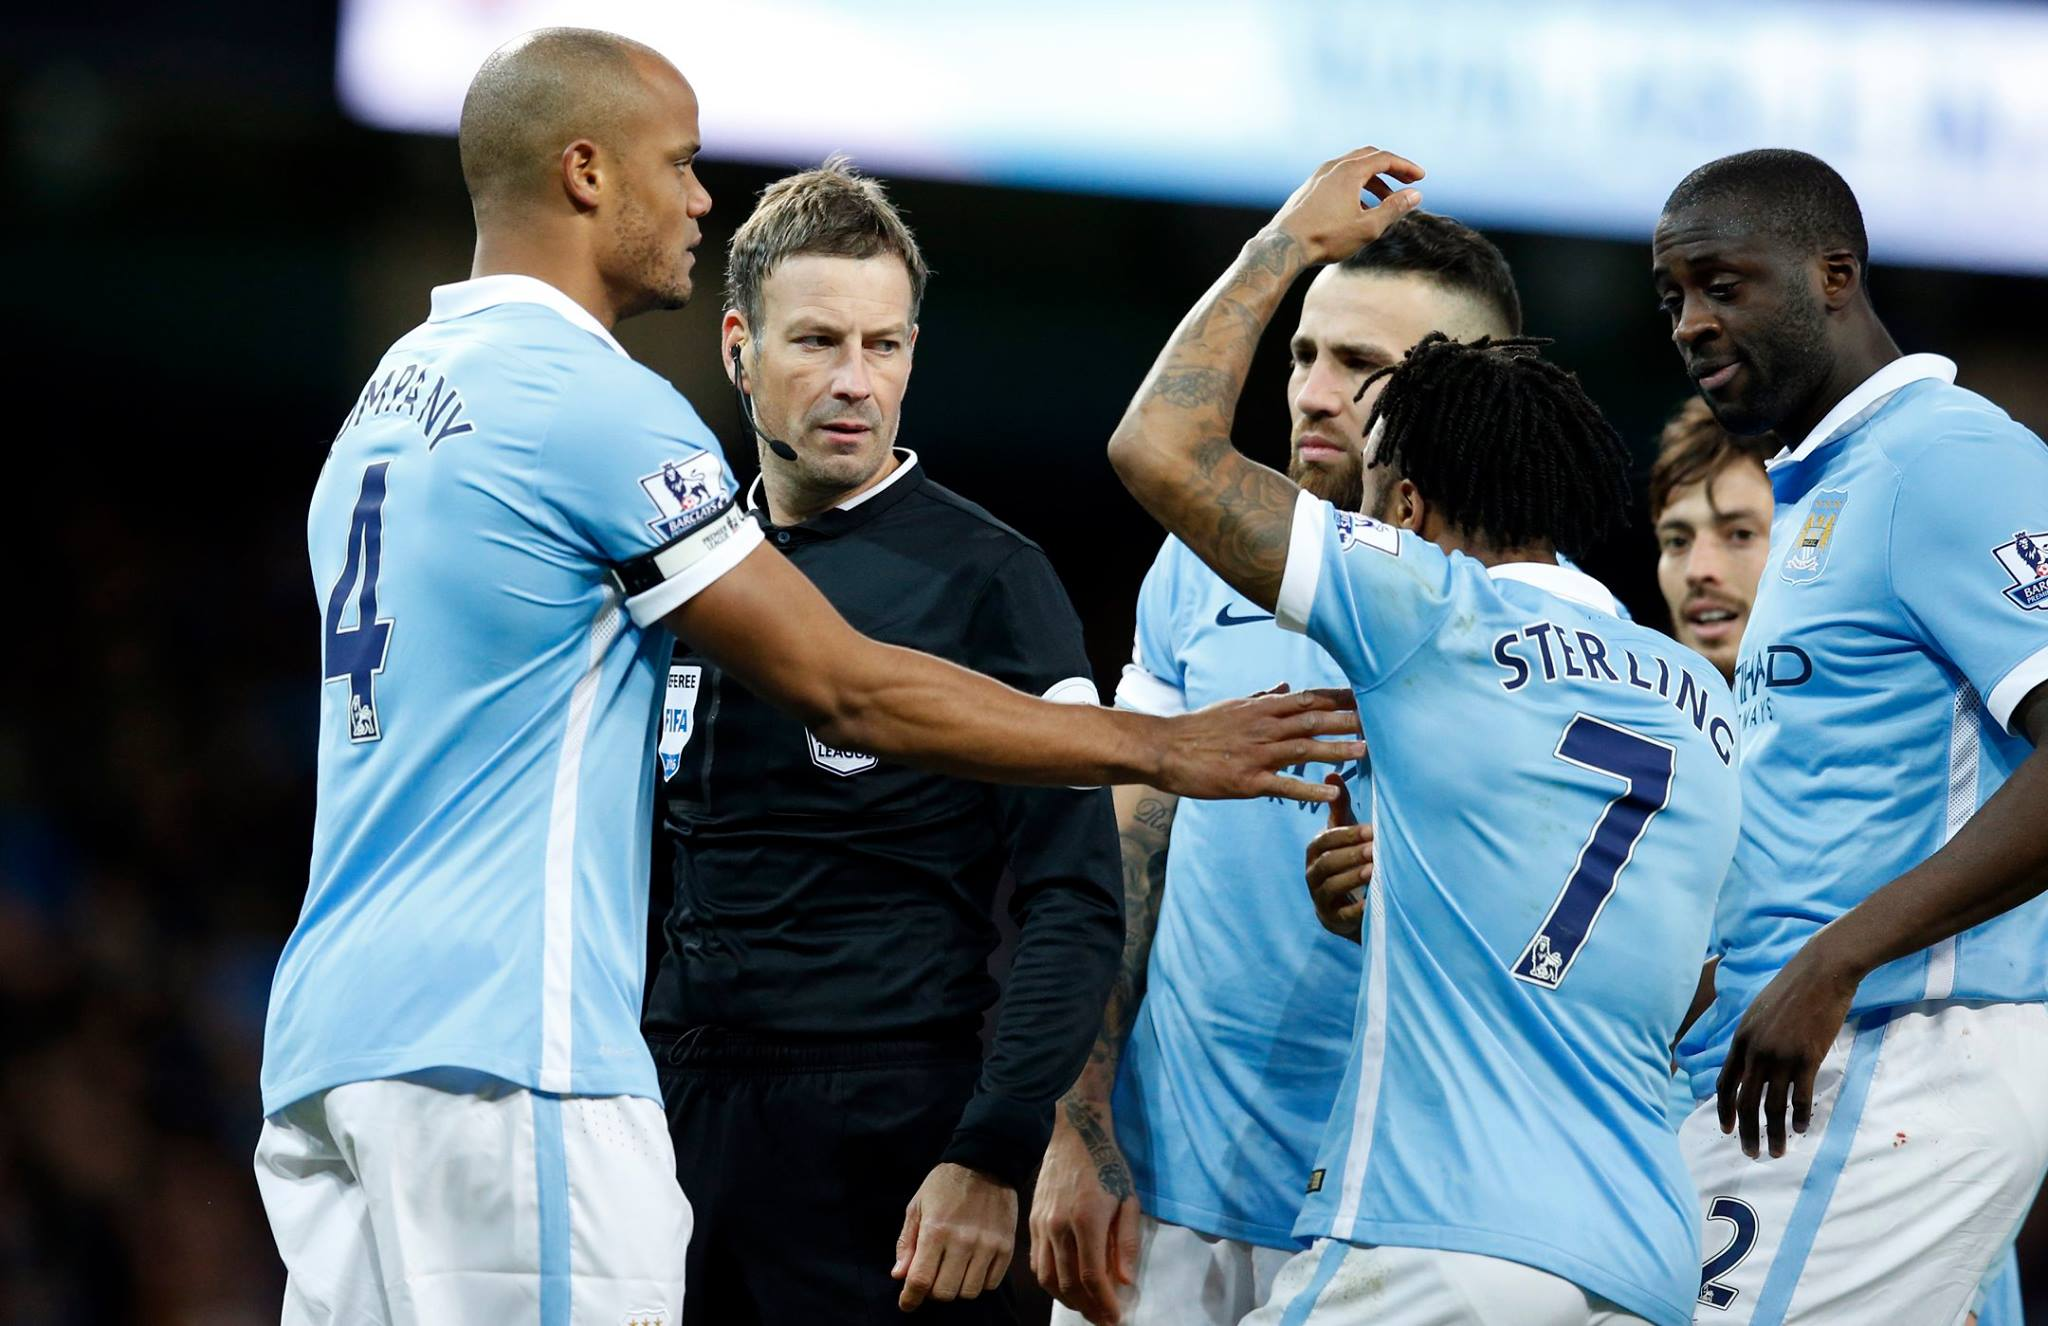 Never a penalty - Raheem Sterling protests his innocence to controversial Clattenburg over the handball that never was against Spurs but to no avail.